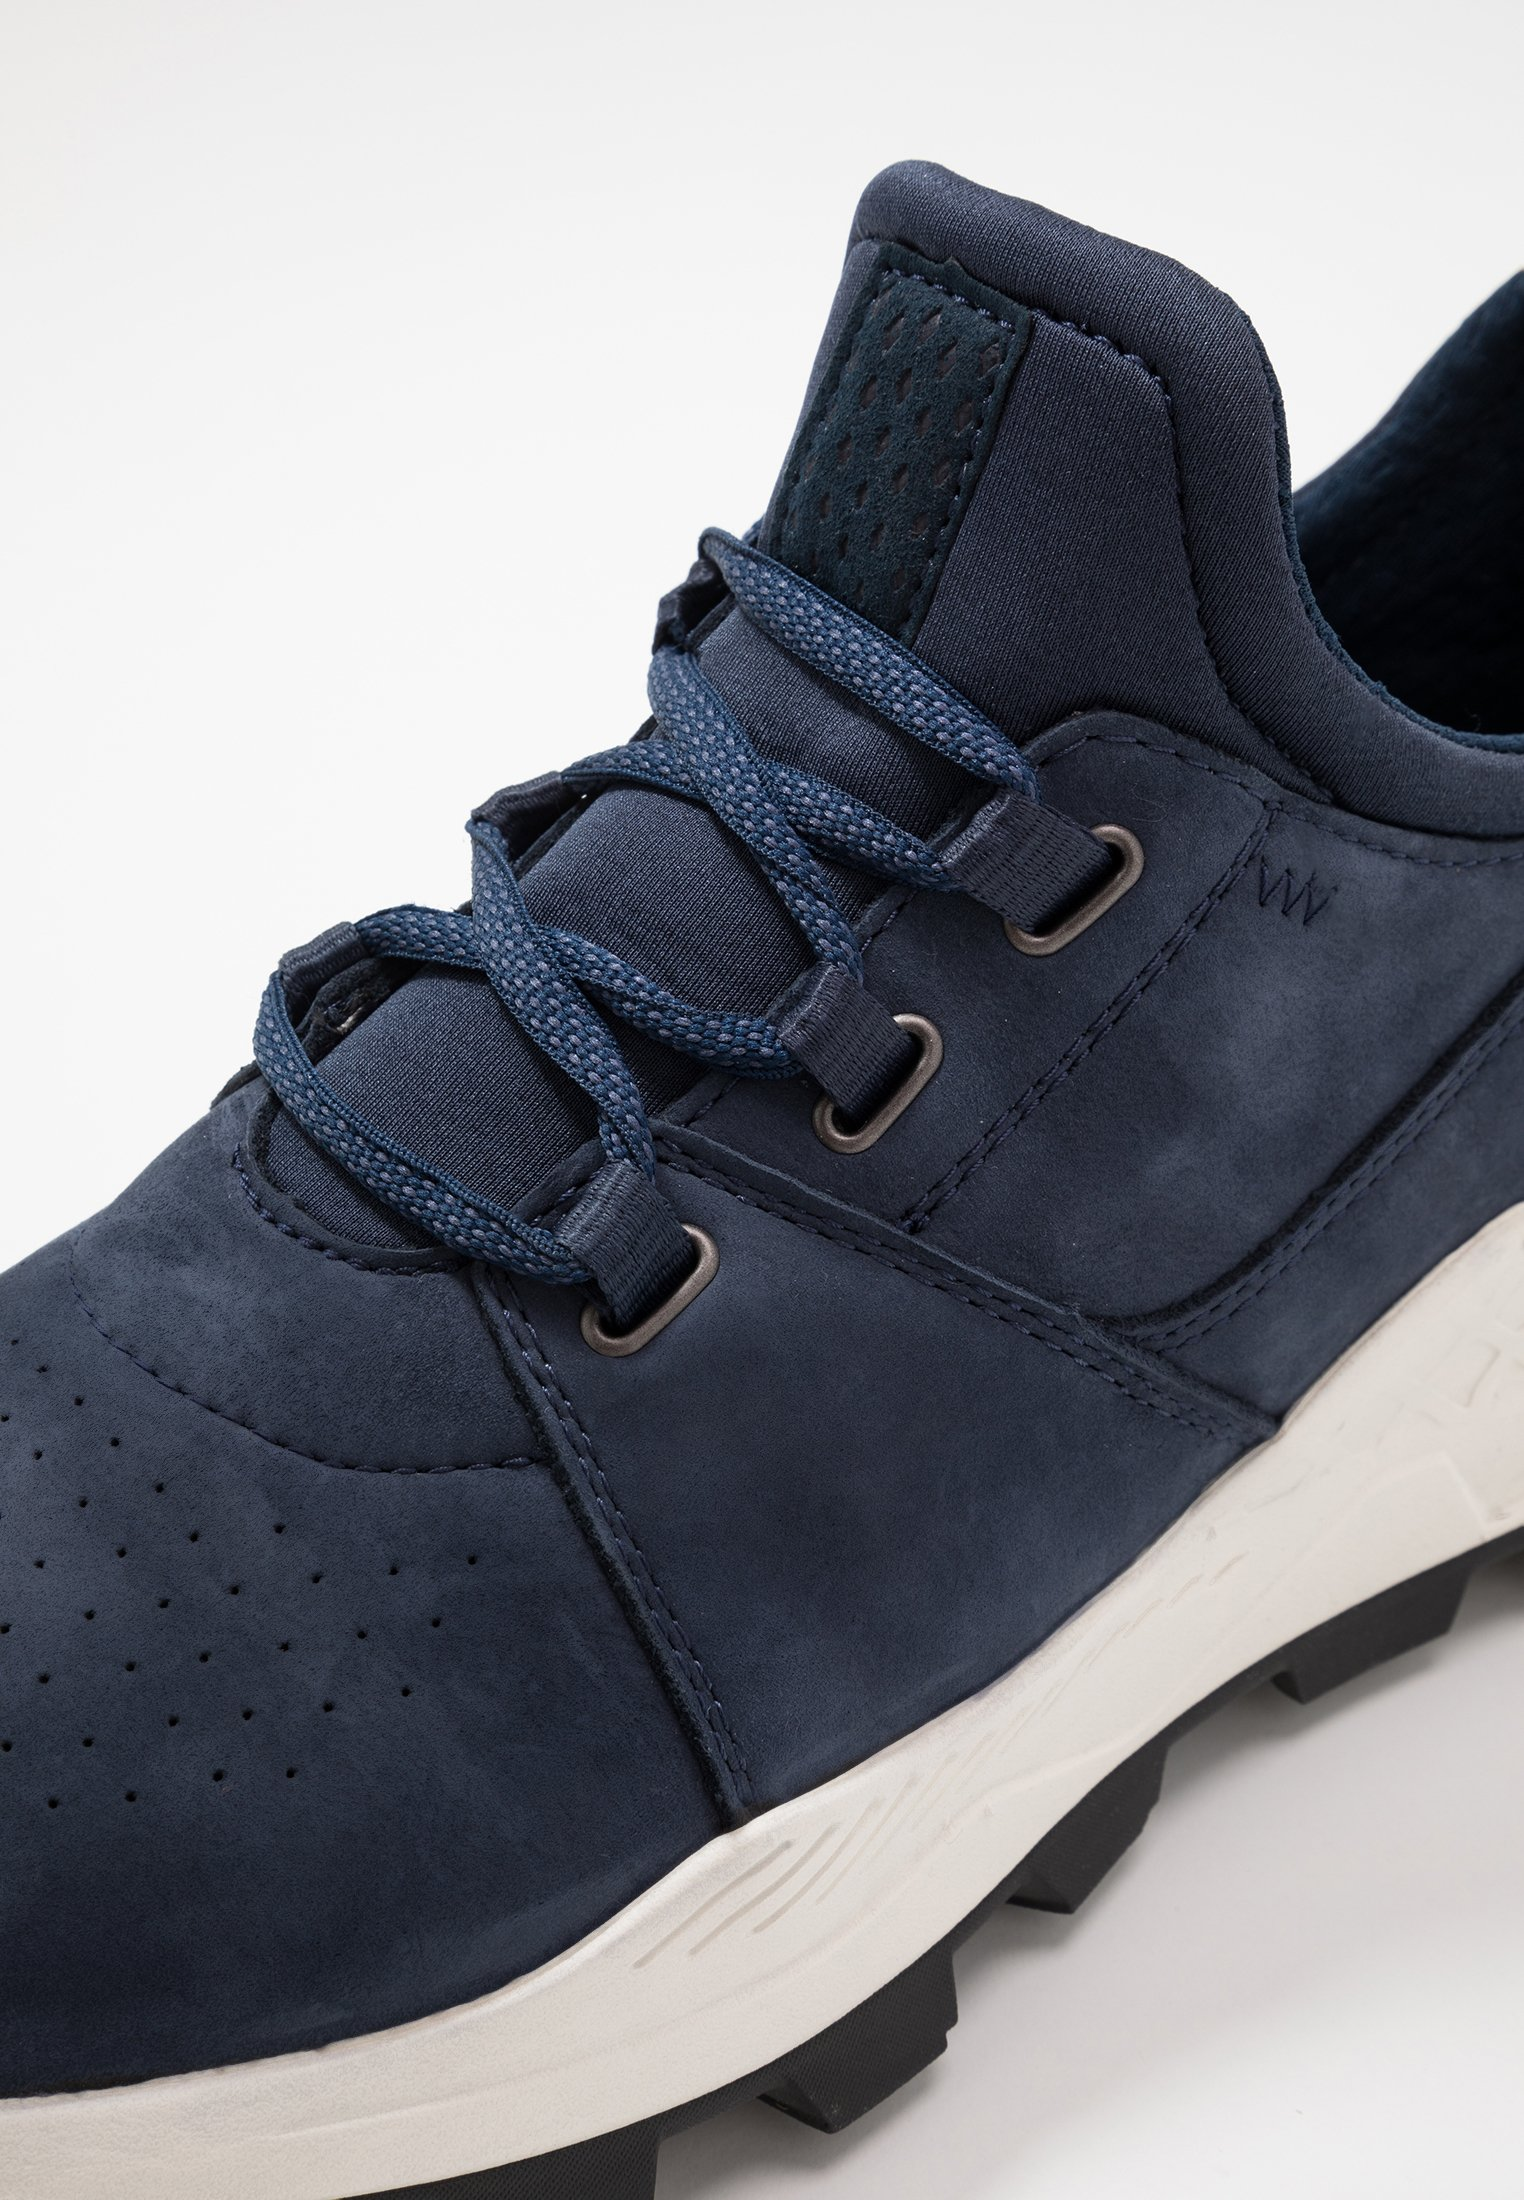 TIMBERLAND Sneaker 'Brooklyn Lace Oxford' in navy weiß